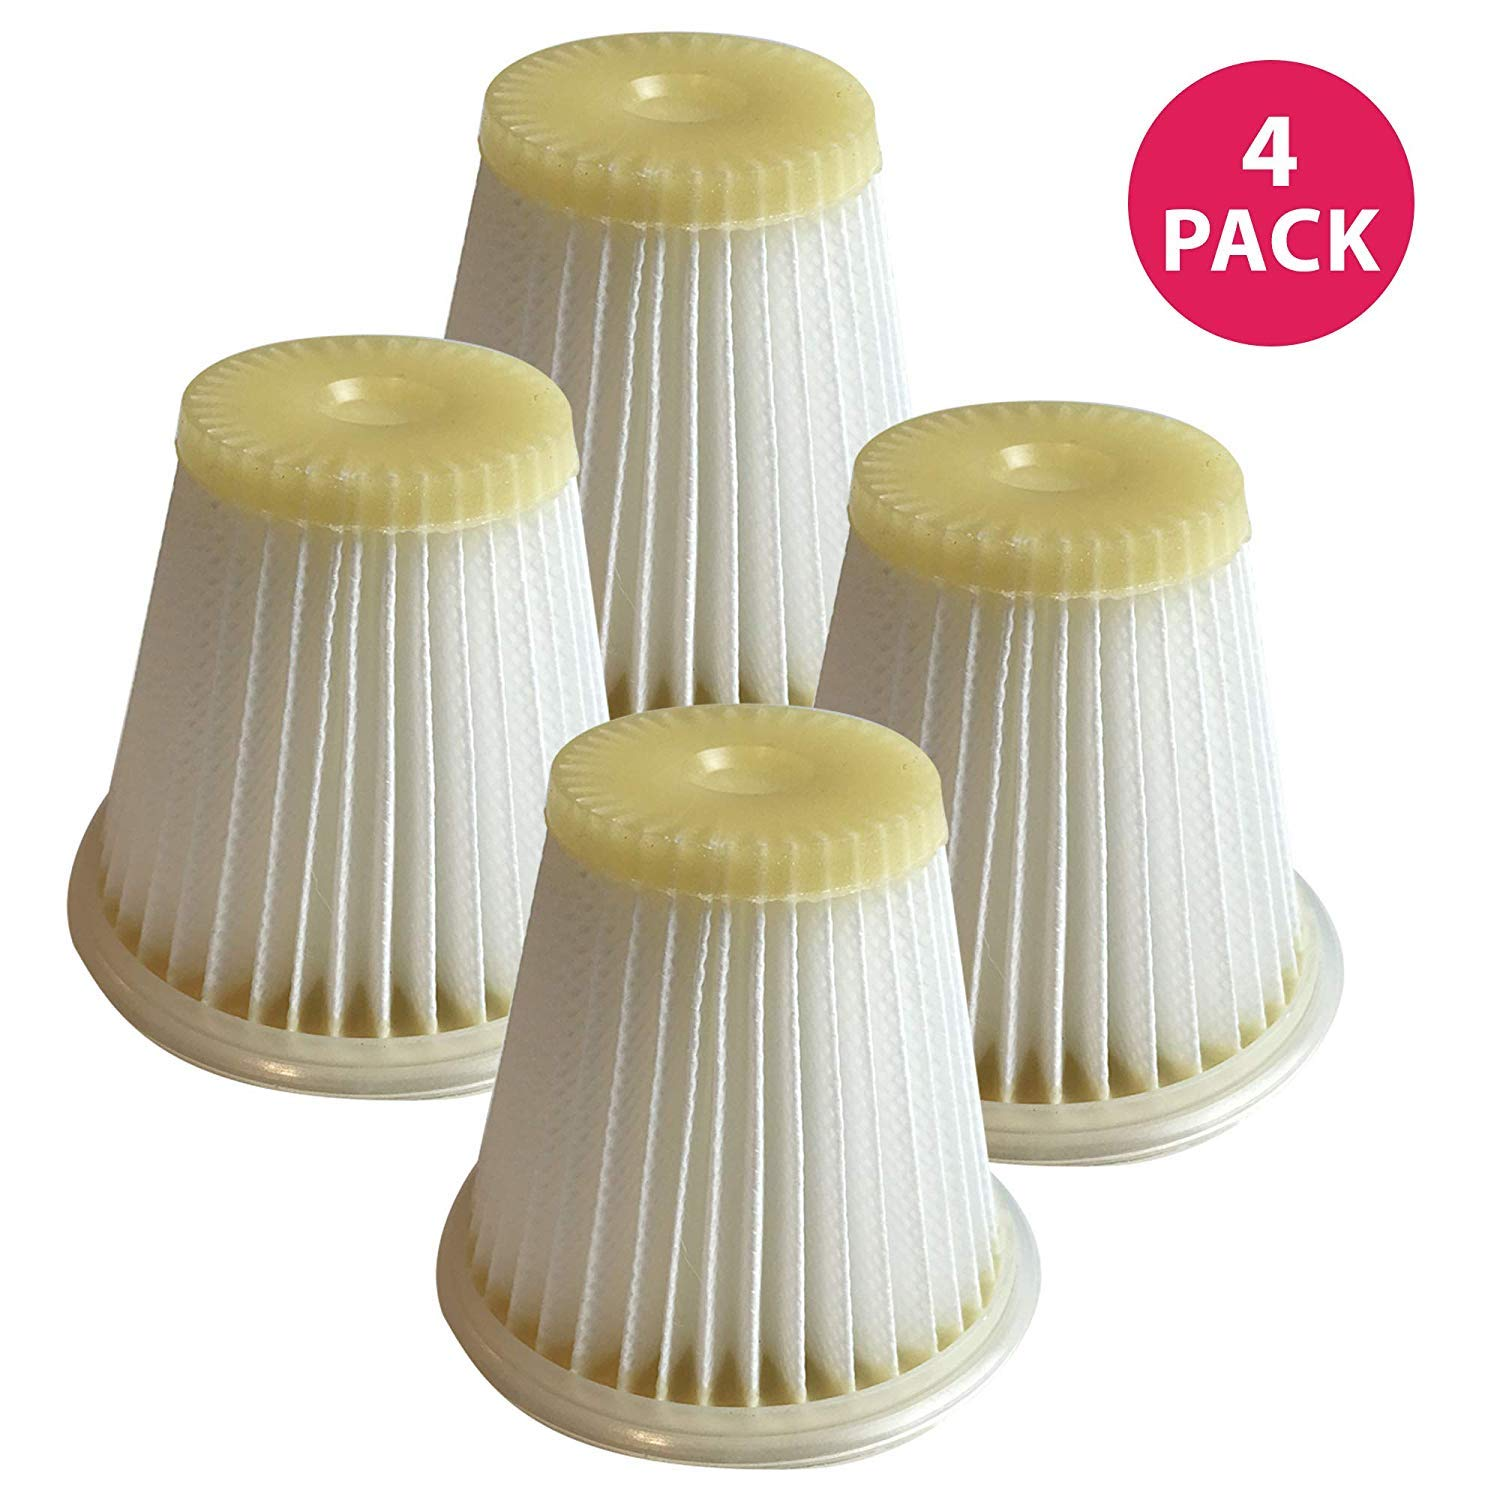 Think Crucial Replacement Air Filters - Compatible with Black and Decker VF100 Washable Dust Buster Filter - HEPA Style Filter Parts - Pair with Part VF100, VF100H and Model CHV1400 - Bulk (4 Pack)